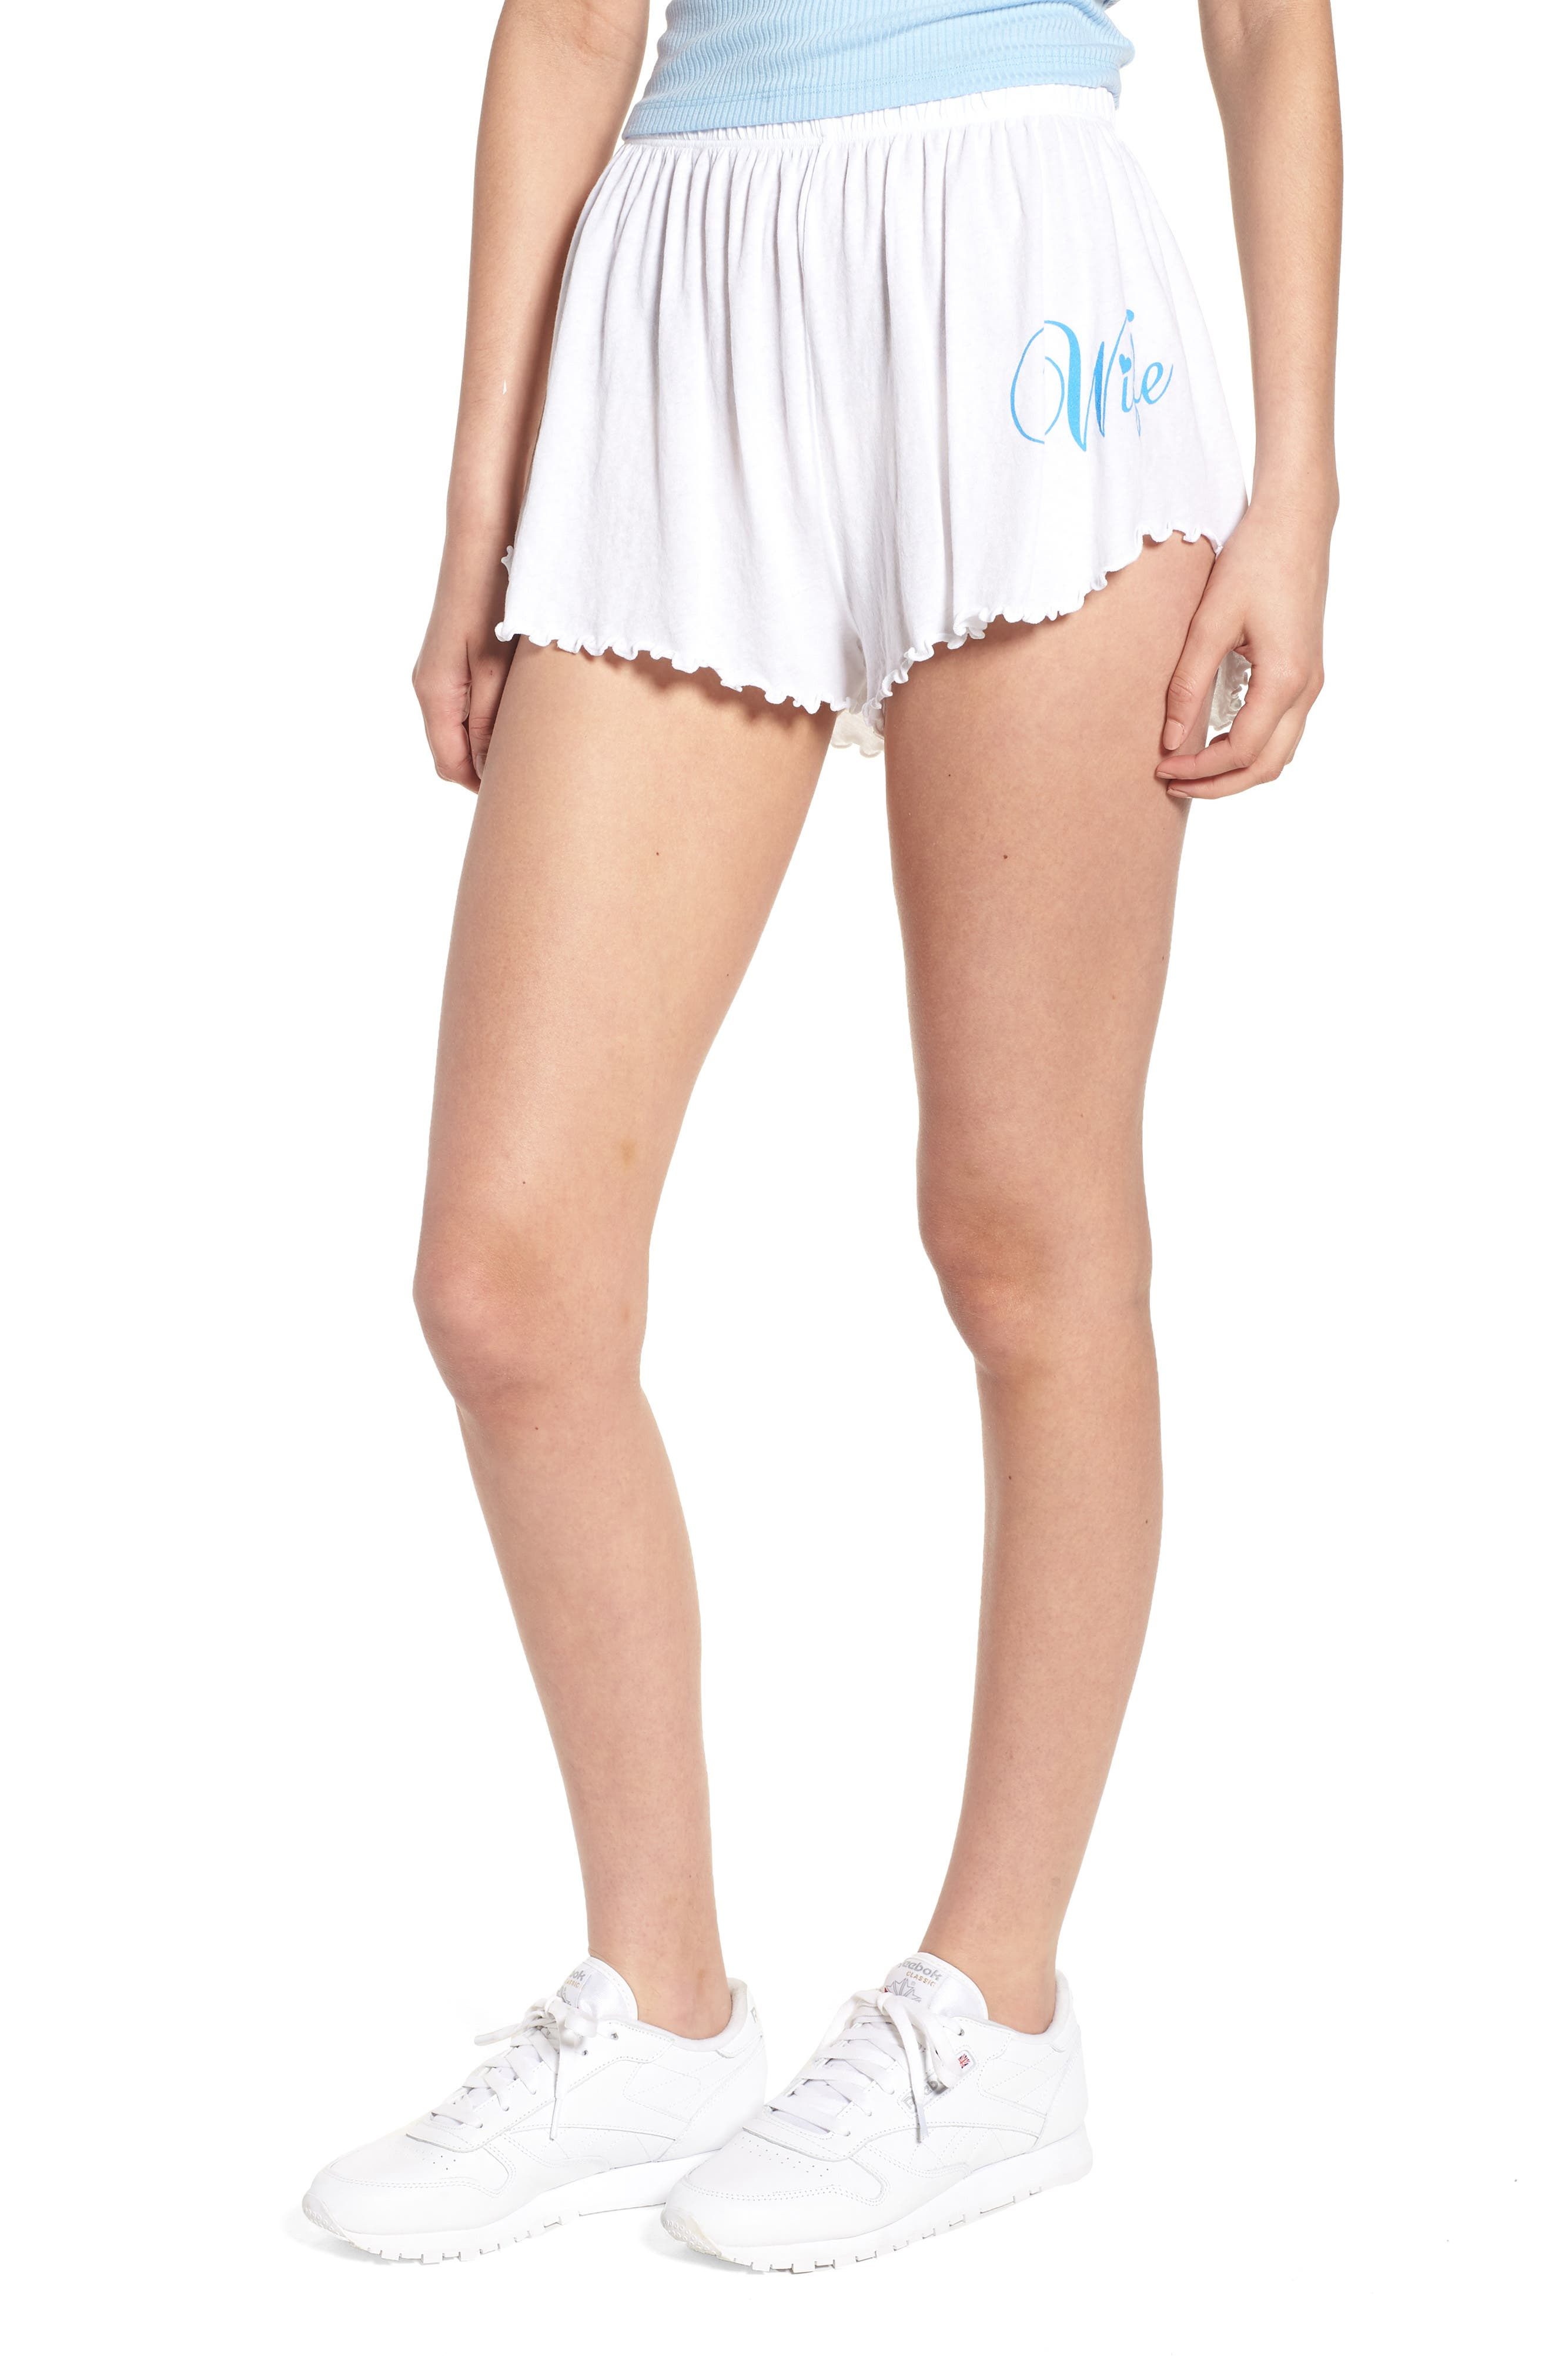 Wife Shorts,                             Main thumbnail 1, color,                             Clean White